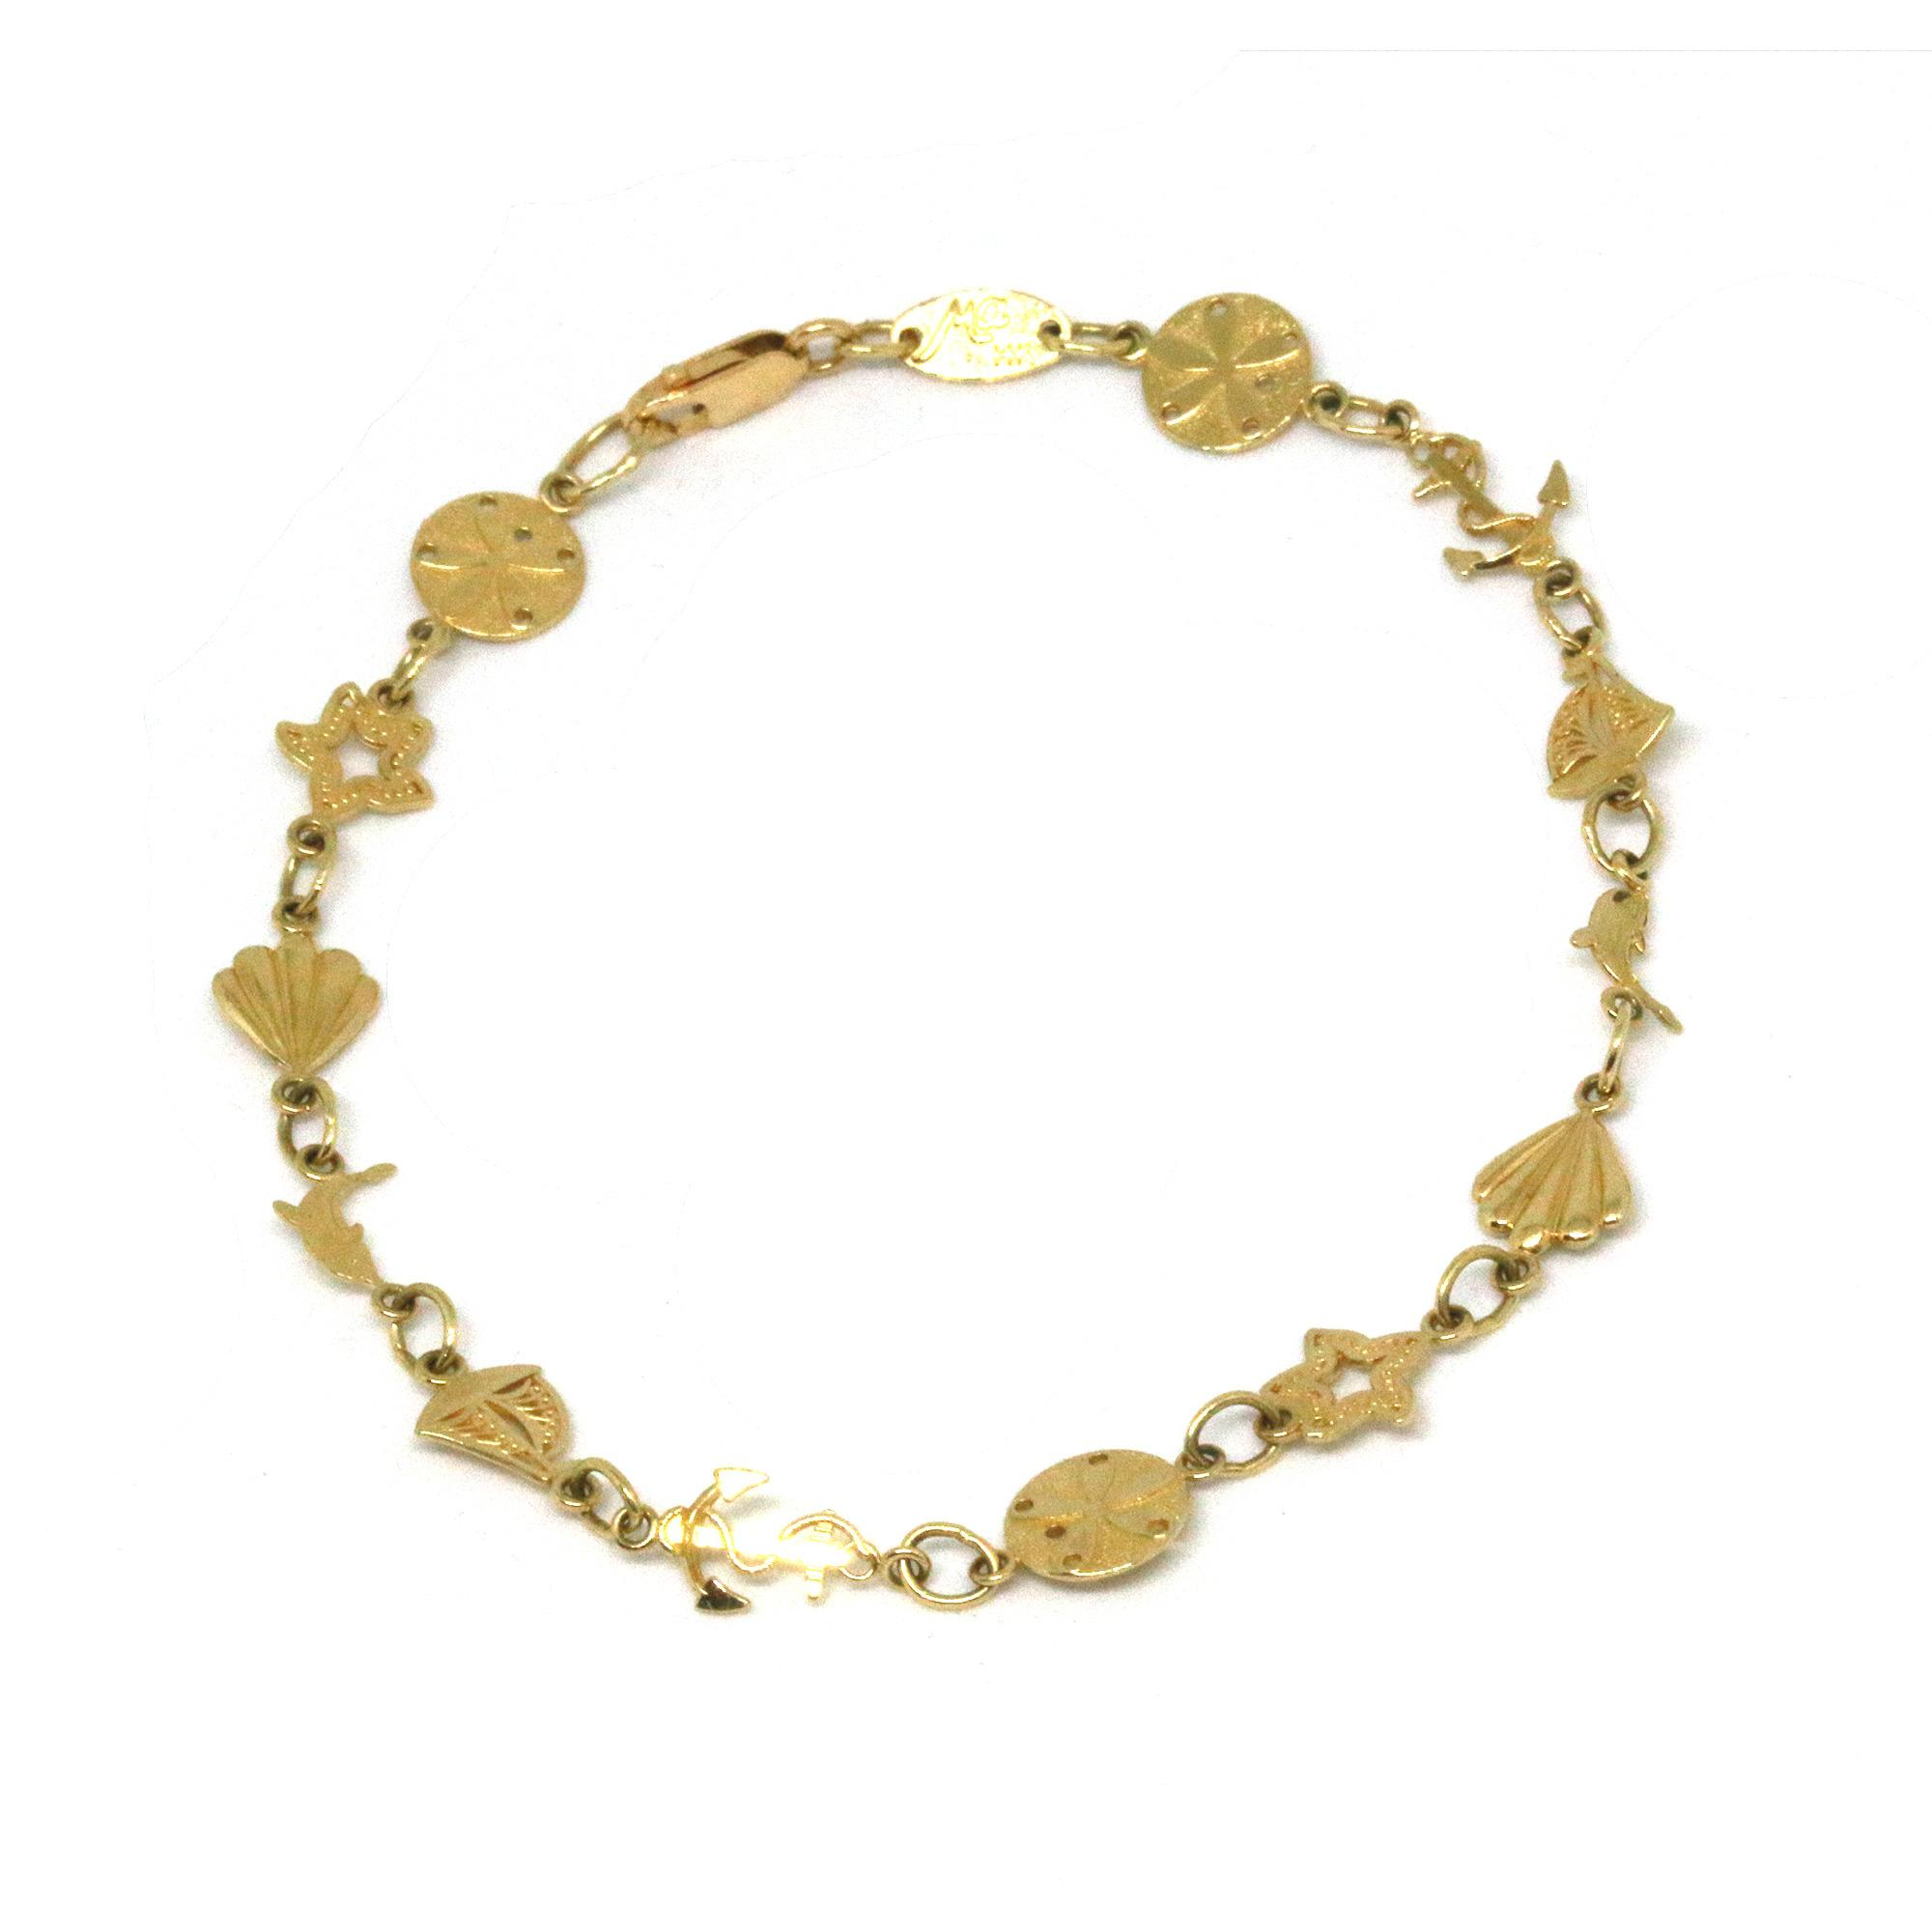 rose paolo products buy natalie gold br costagli premier bracelets design bracelet